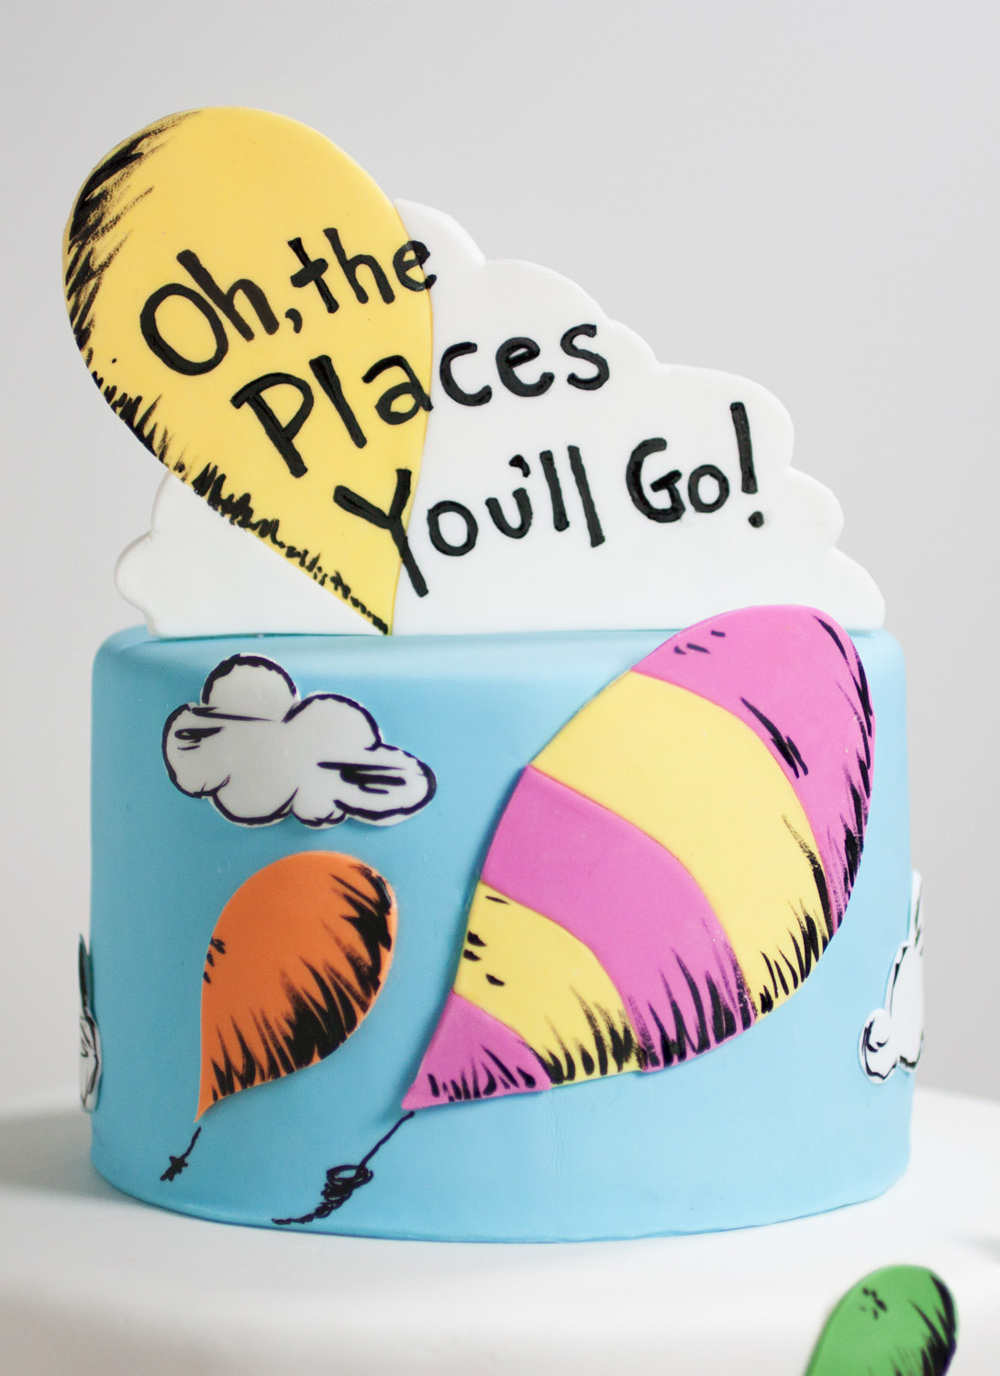 seuss-quote-graduation-cake-2-whipped-bakeshop